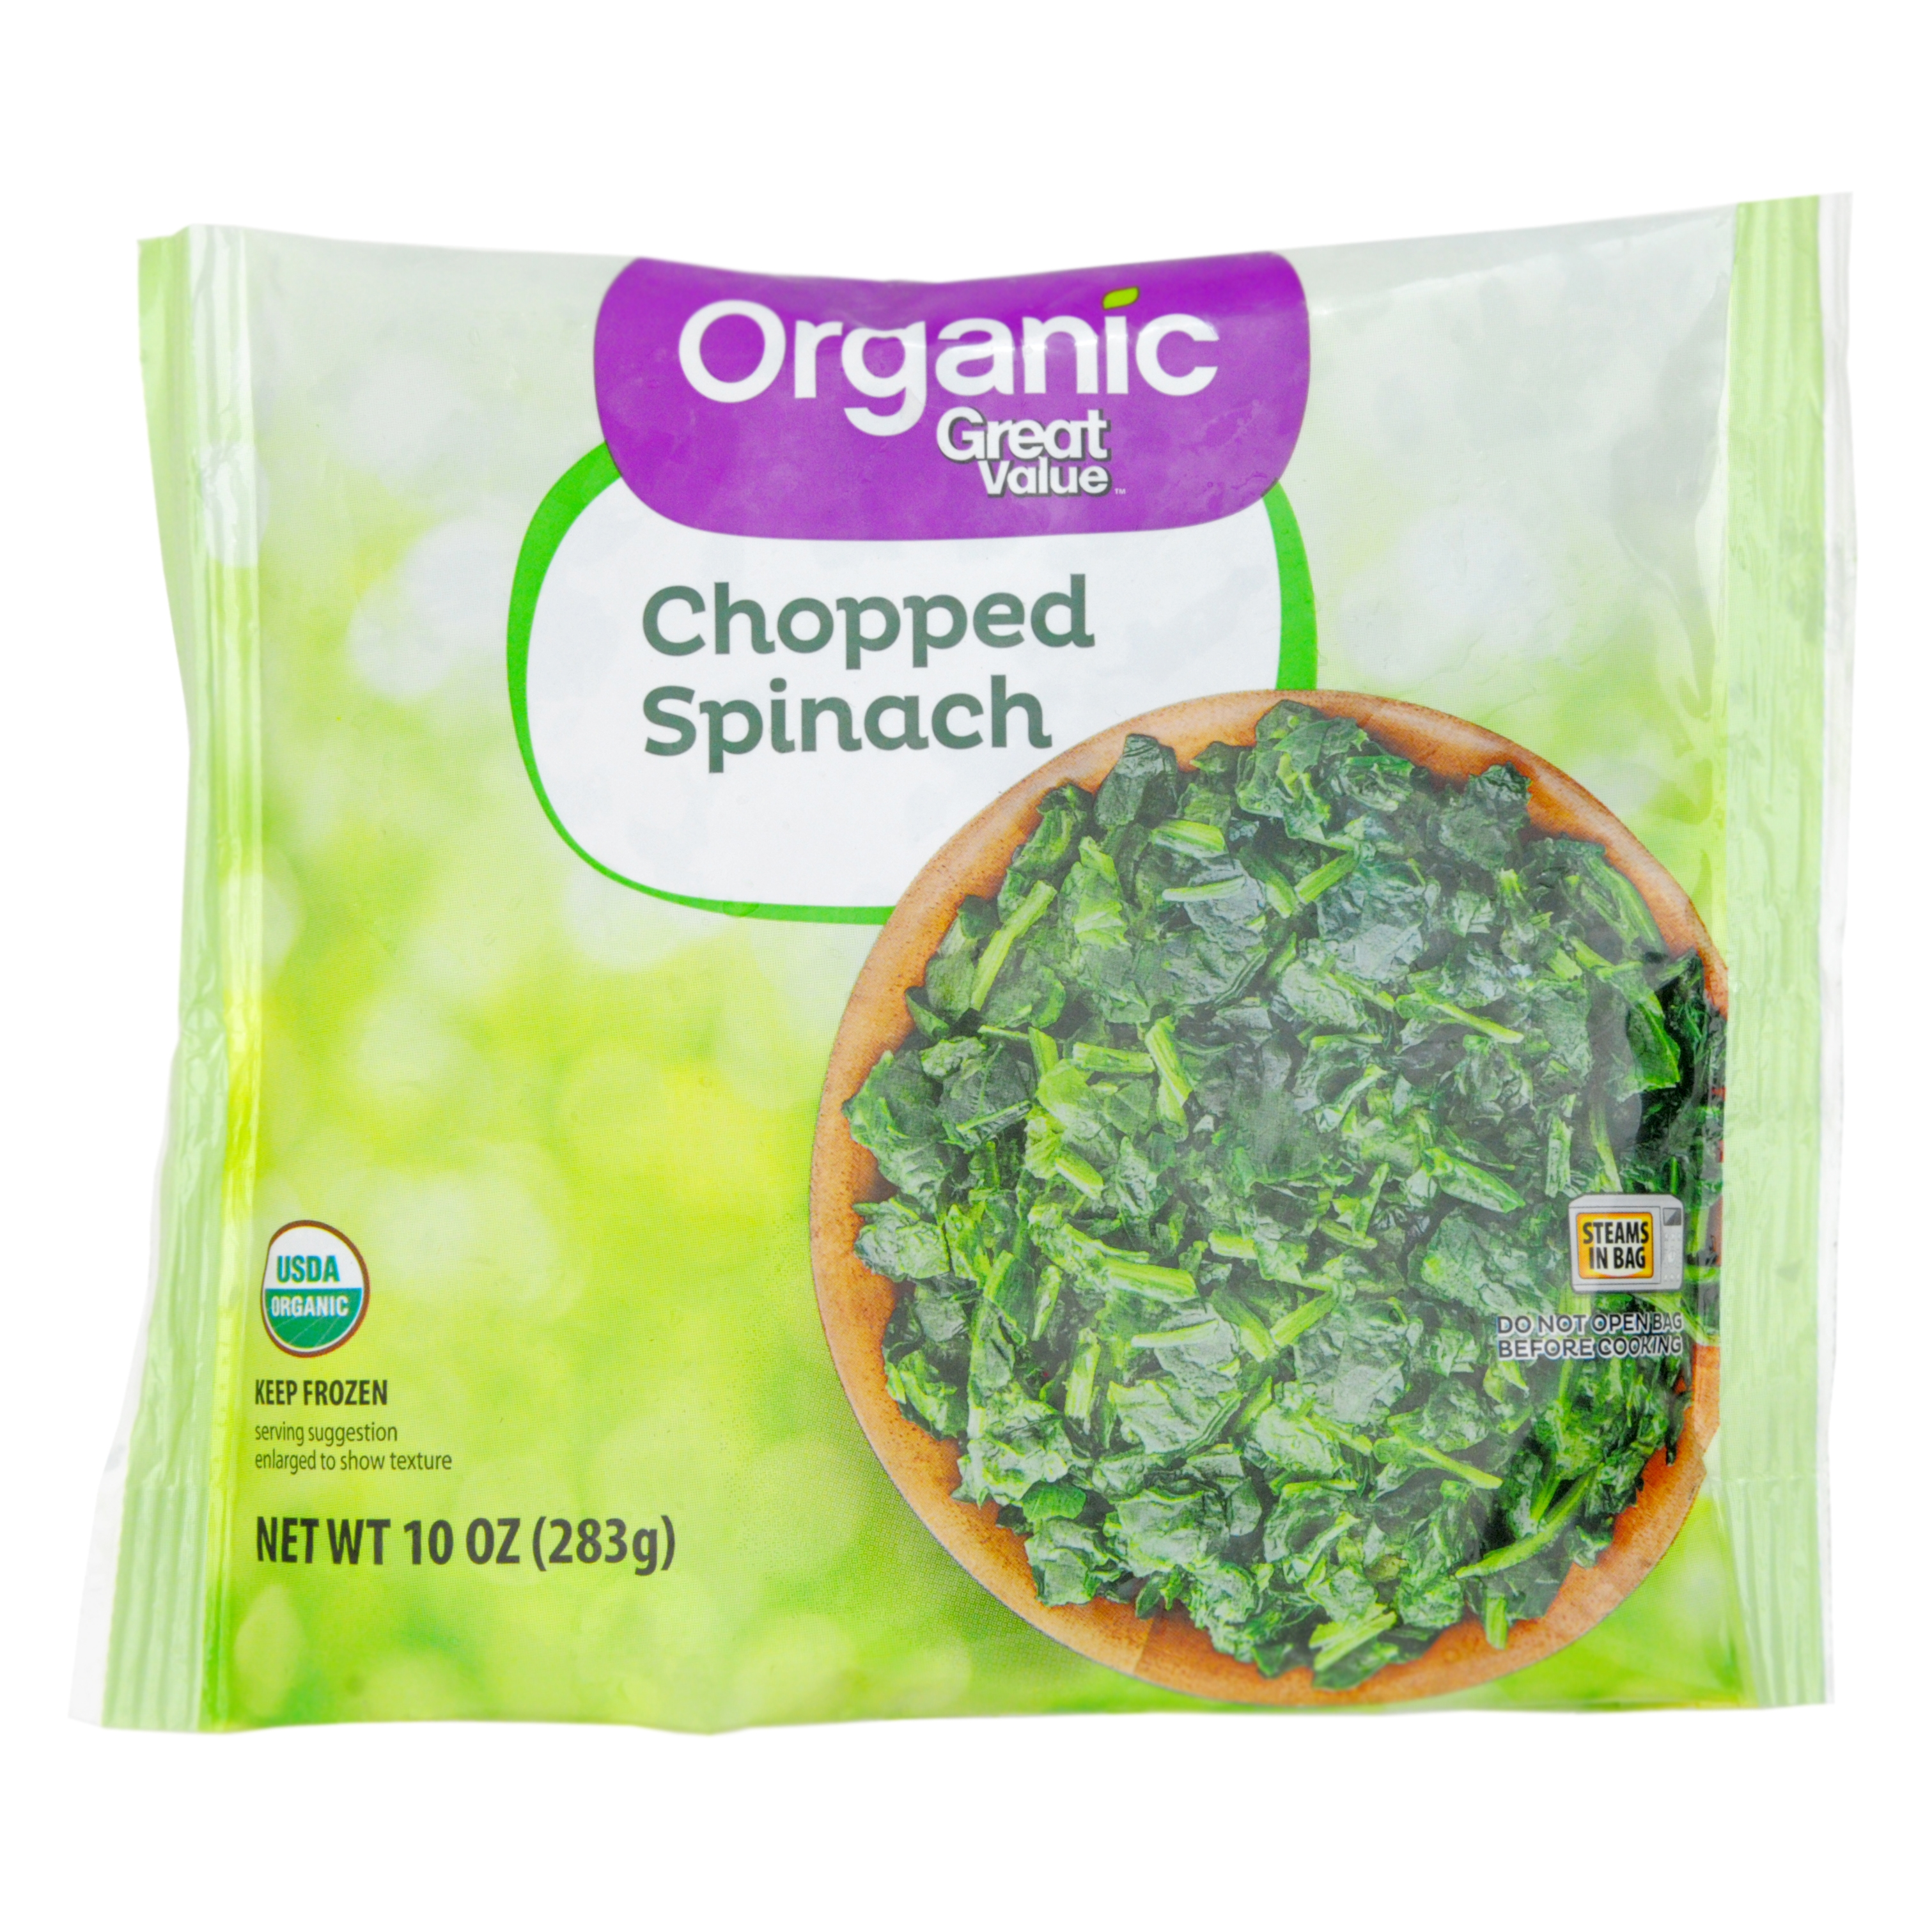 Great Value Organic Chopped Spinach